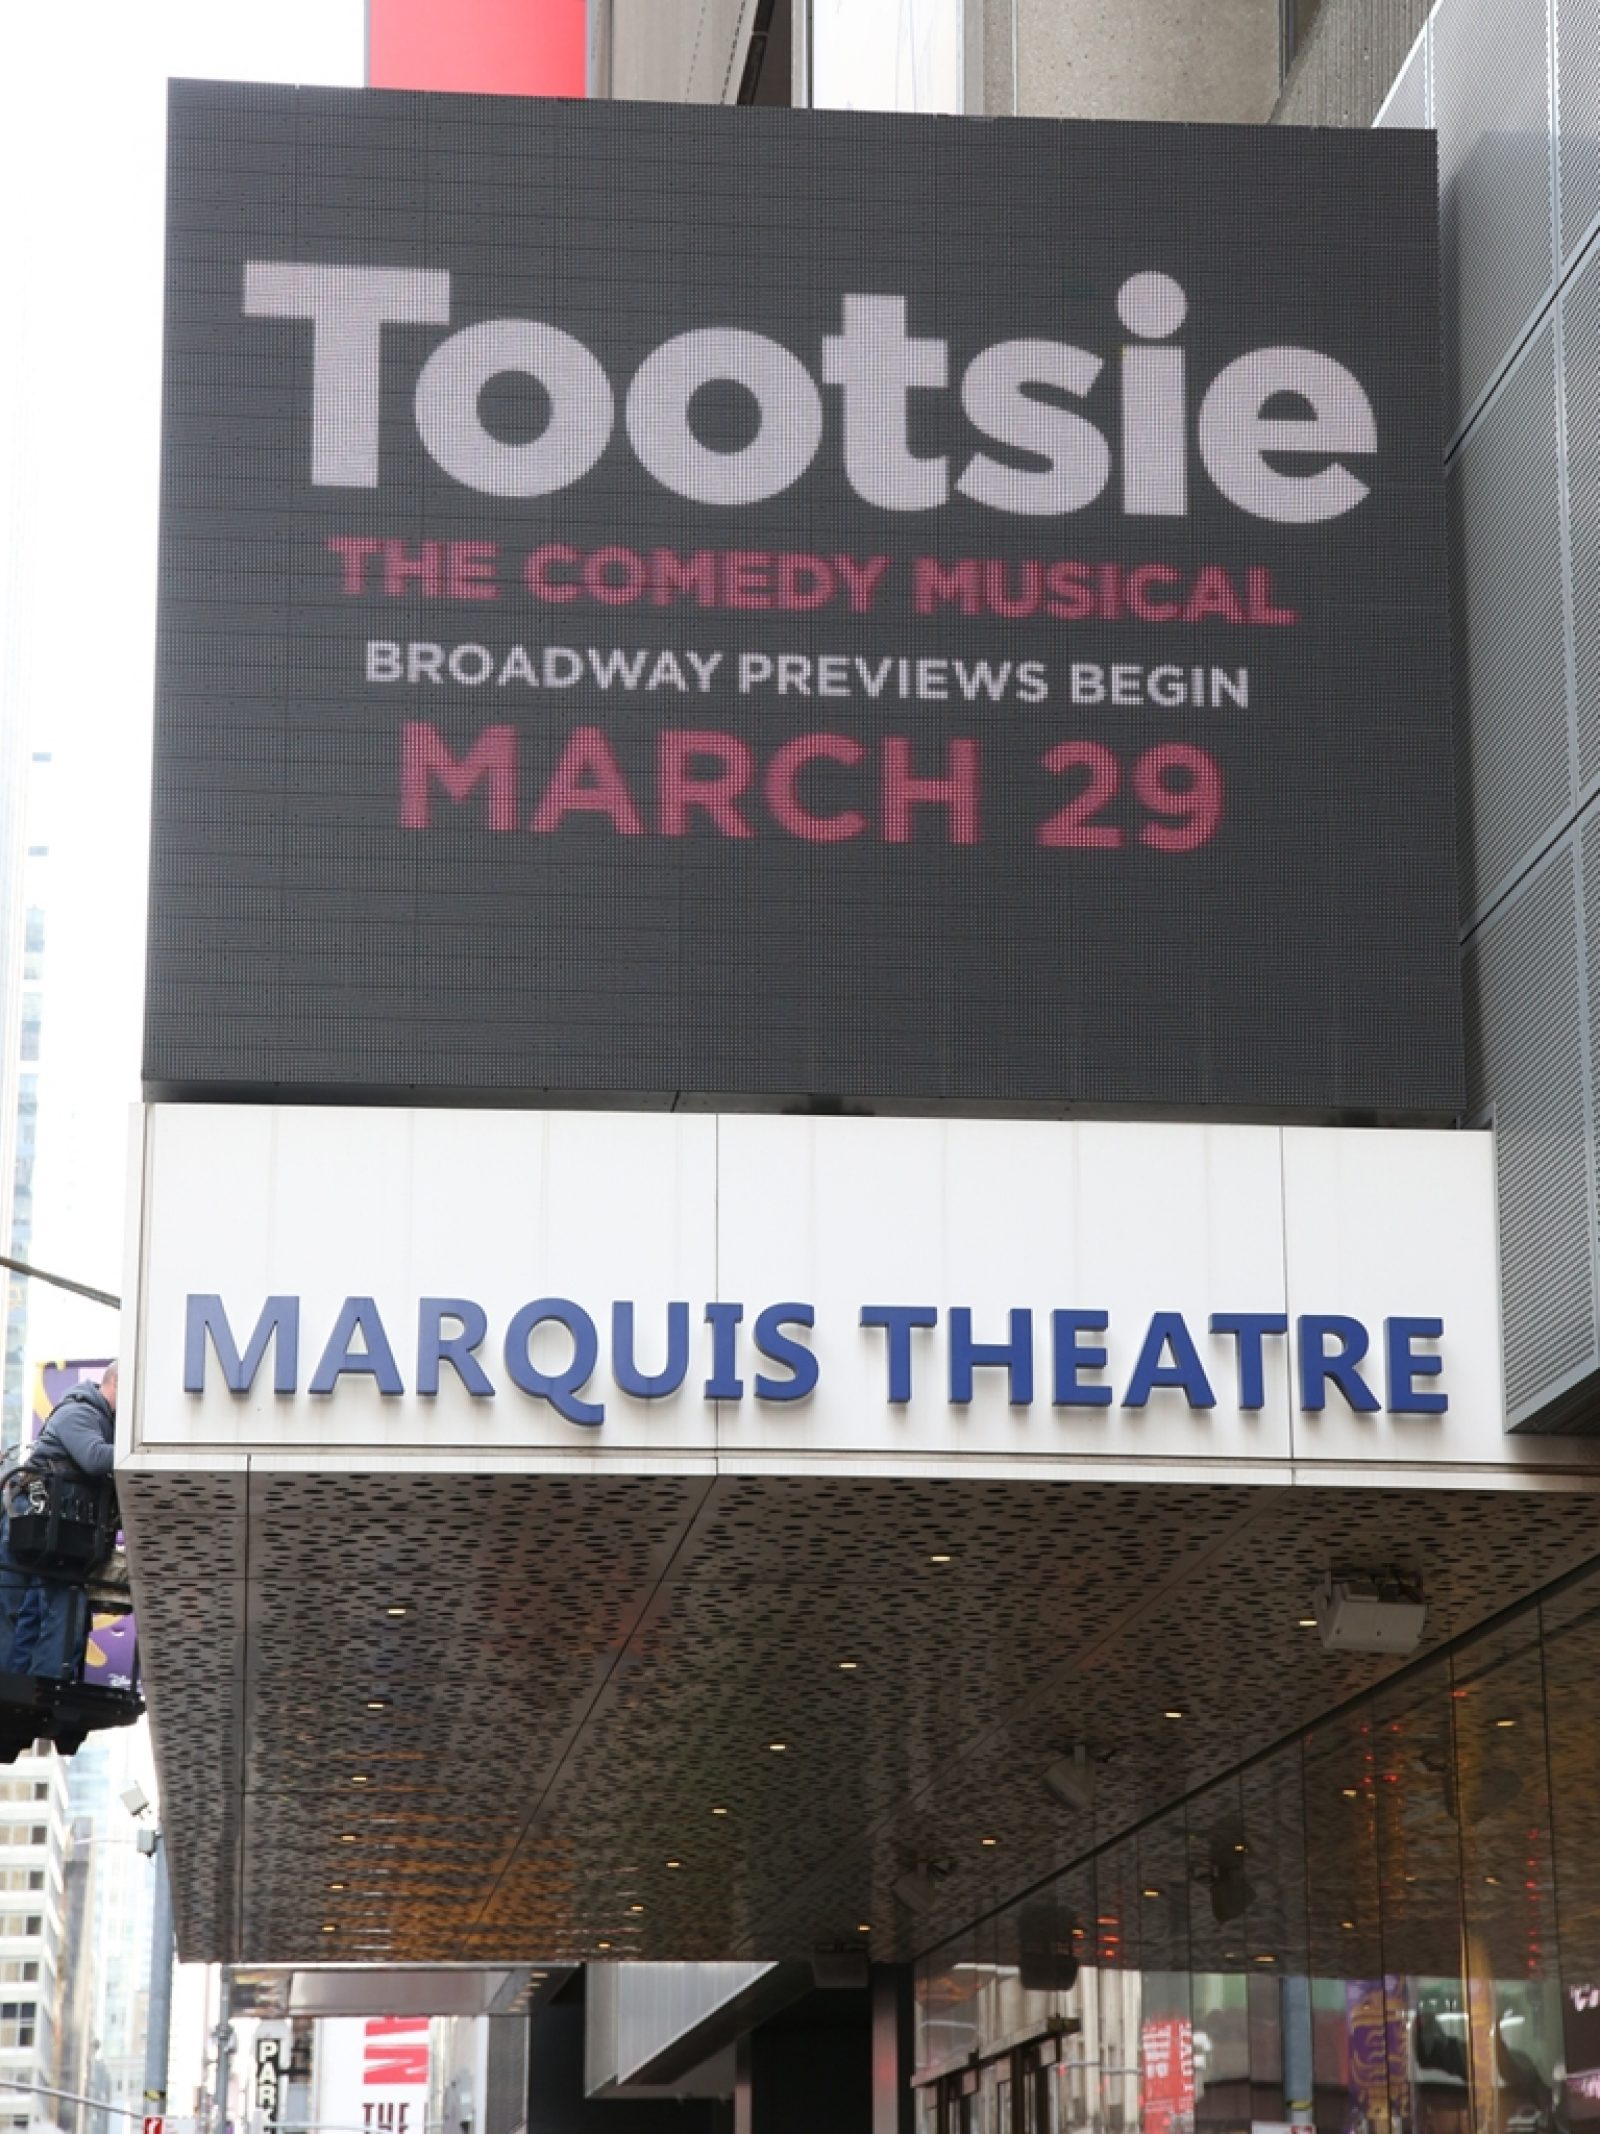 Tootsie Discount Broadway Tickets Including Discount Code